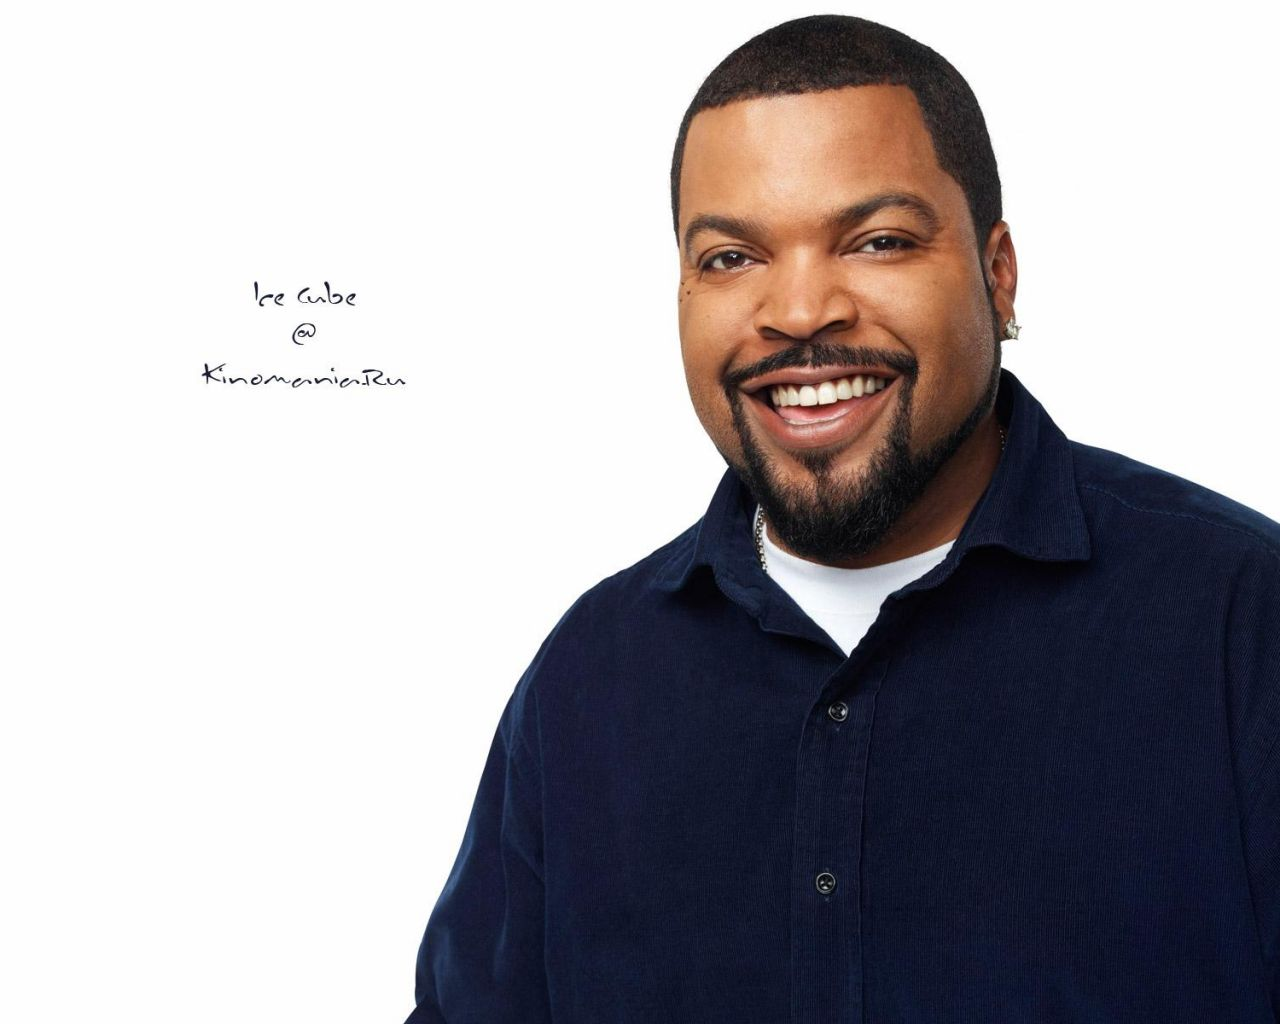 Ice cube - can you bounce